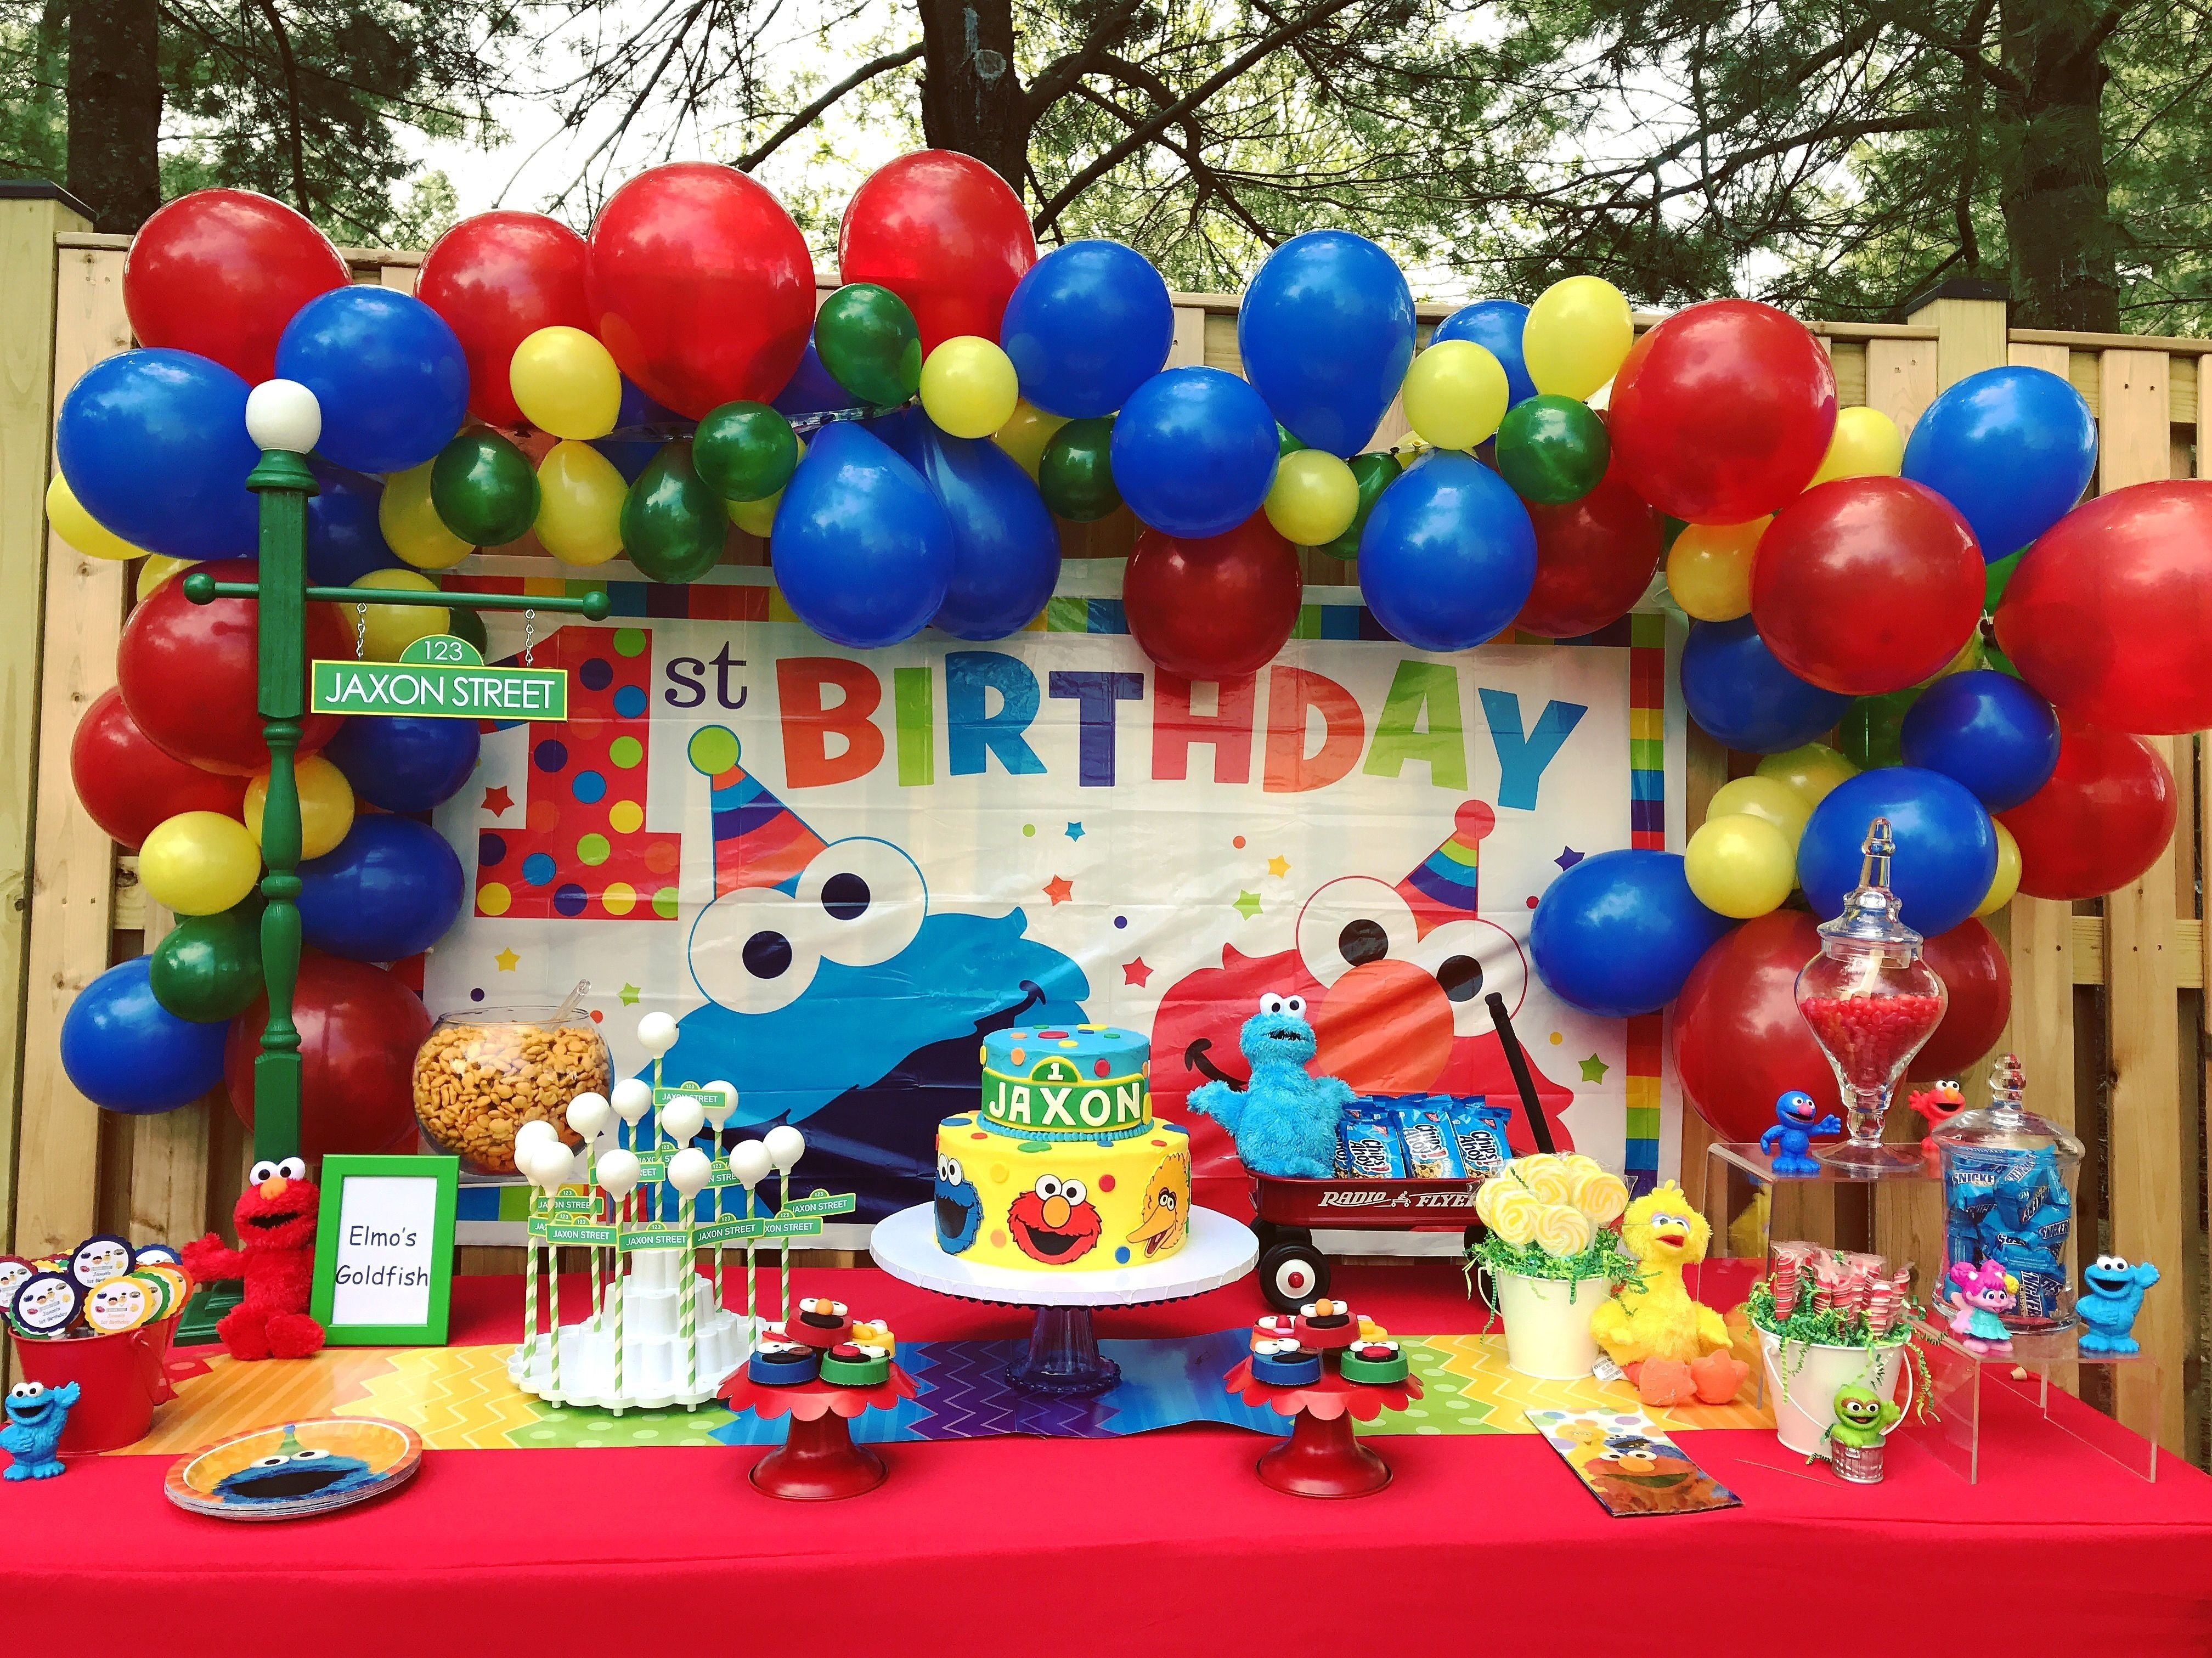 10 Lovely Sesame Street Party Ideas Decorations sesame street first birthday potomac parties events pinterest 4 2020